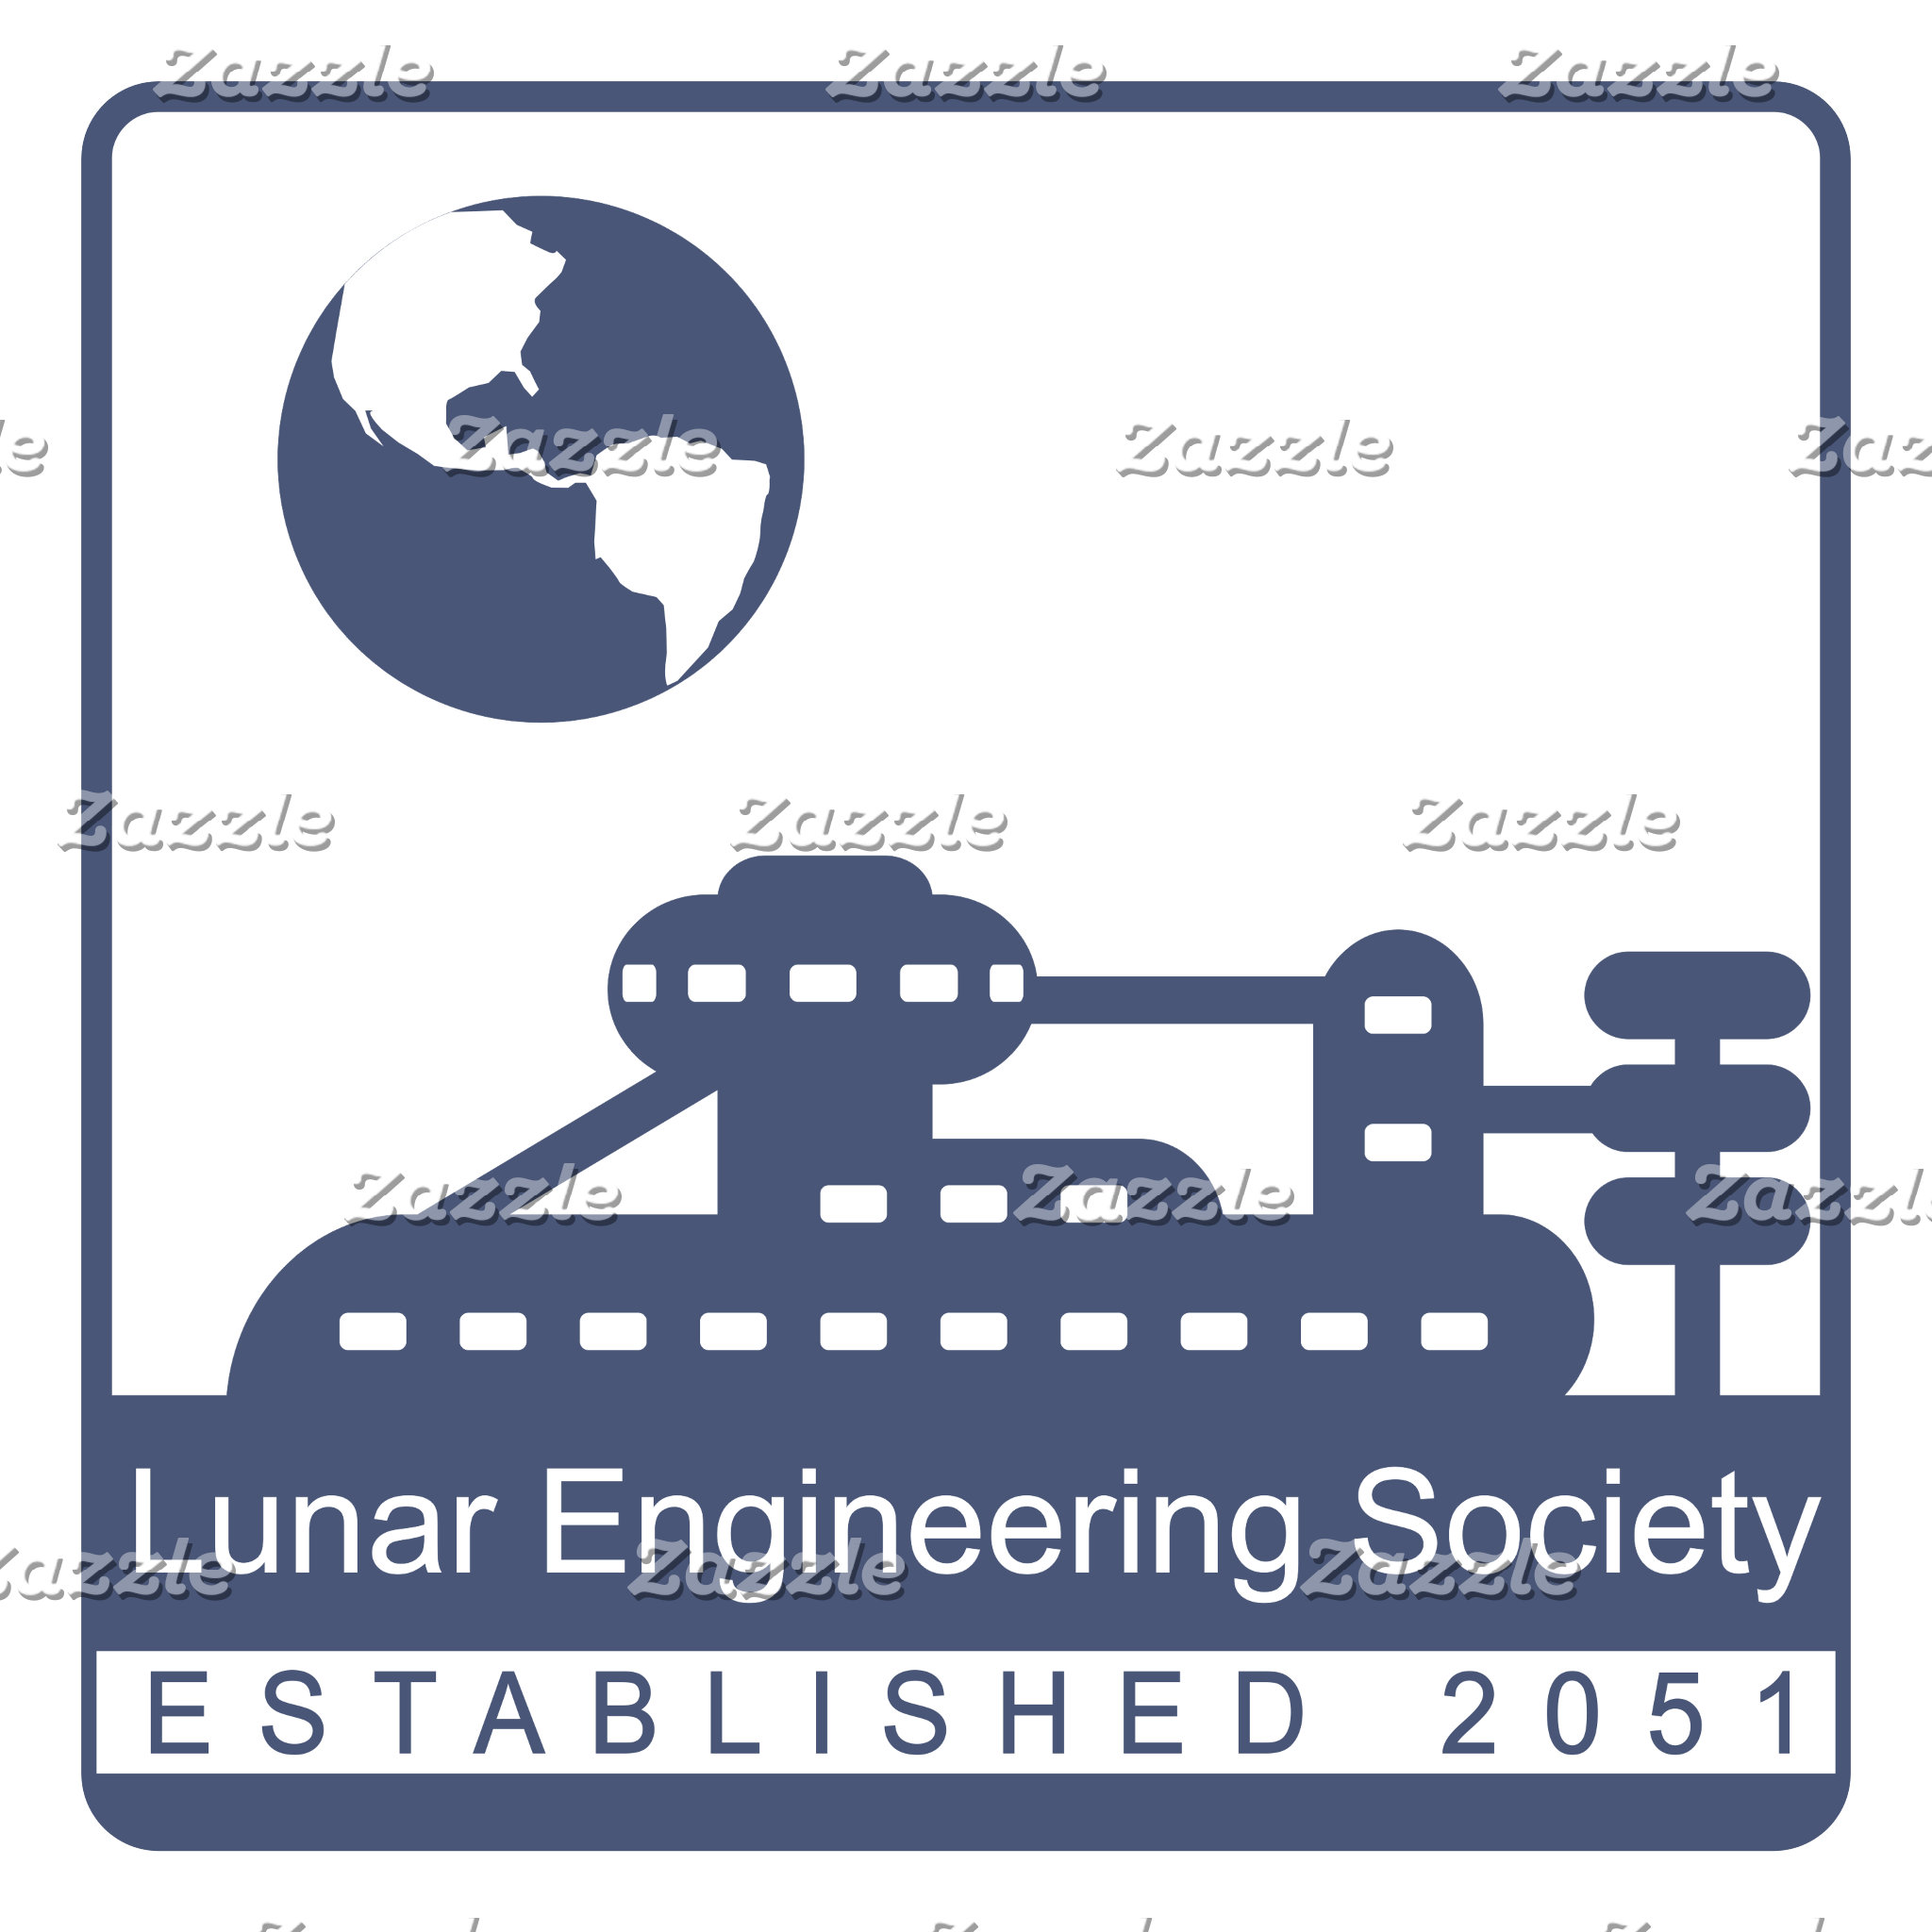 Lunar Engineering